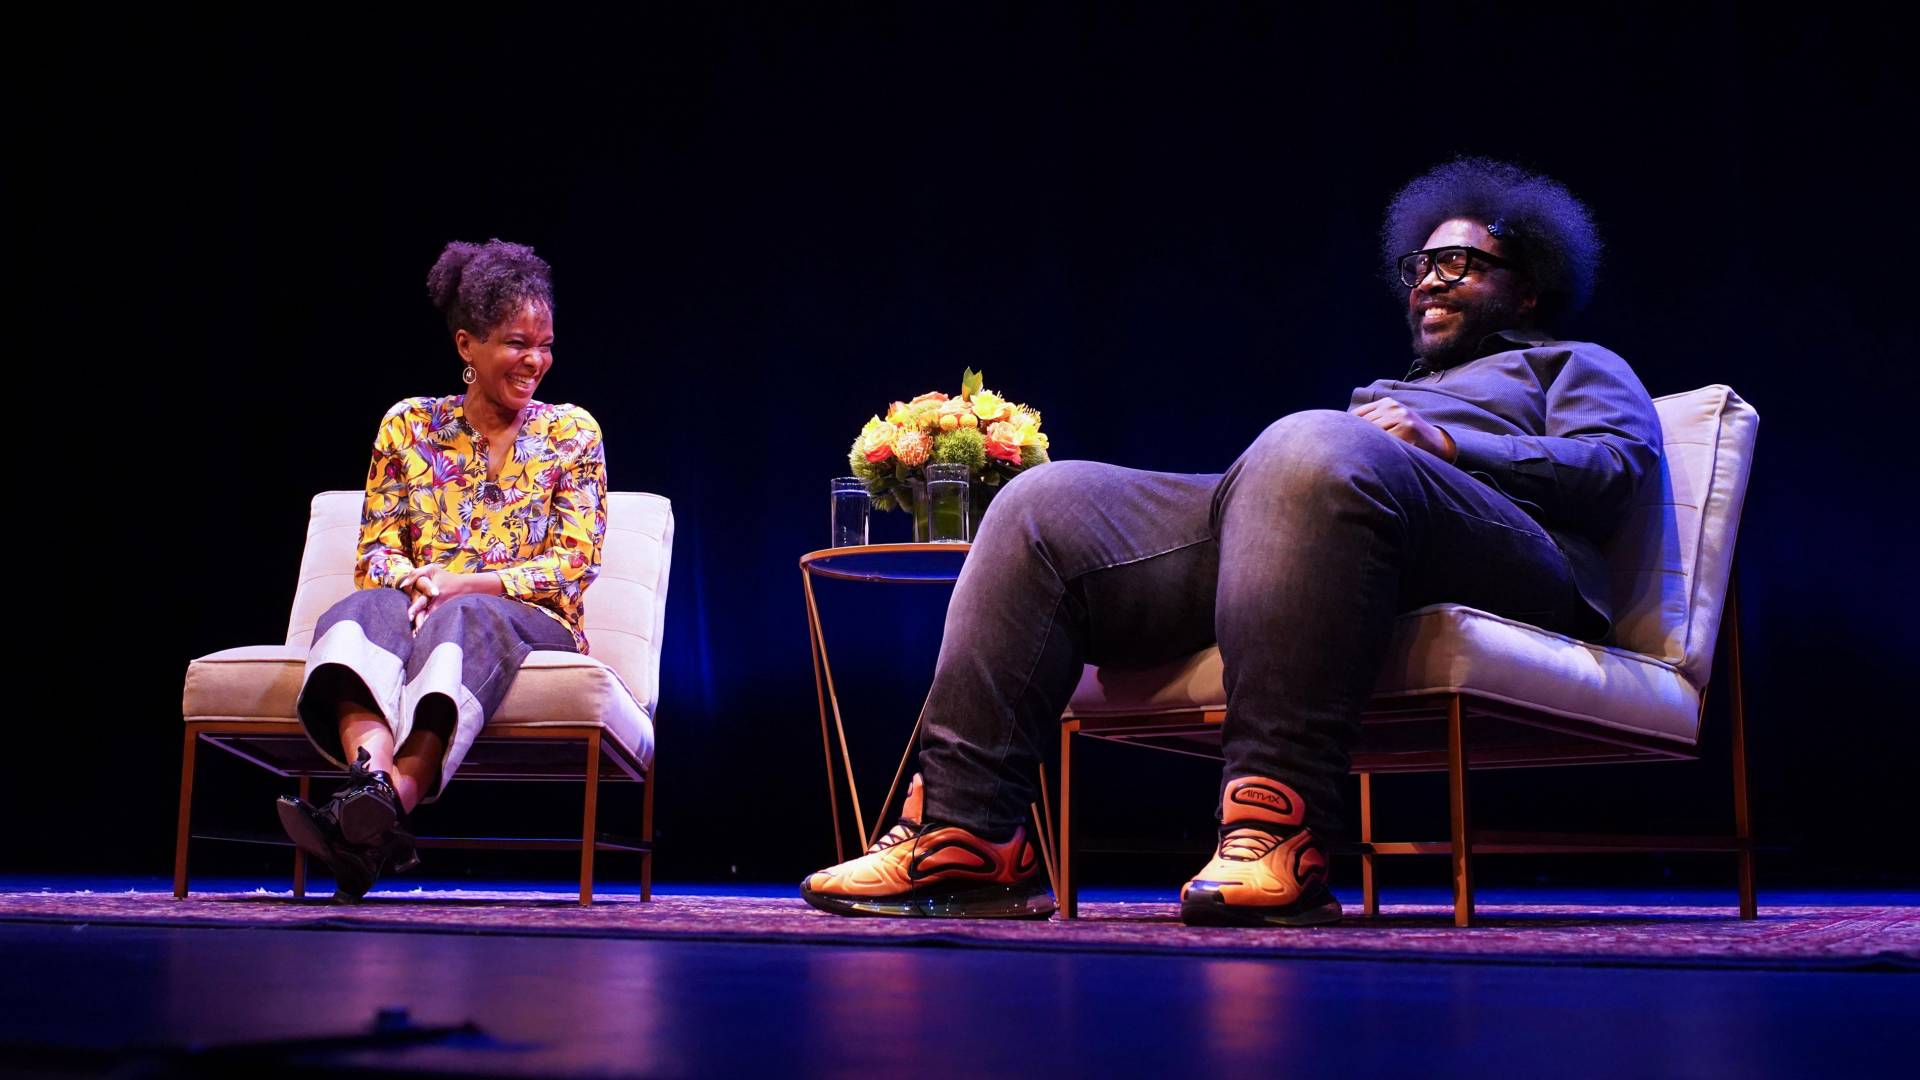 Imani Perry and Questlove speaking with each other on stage